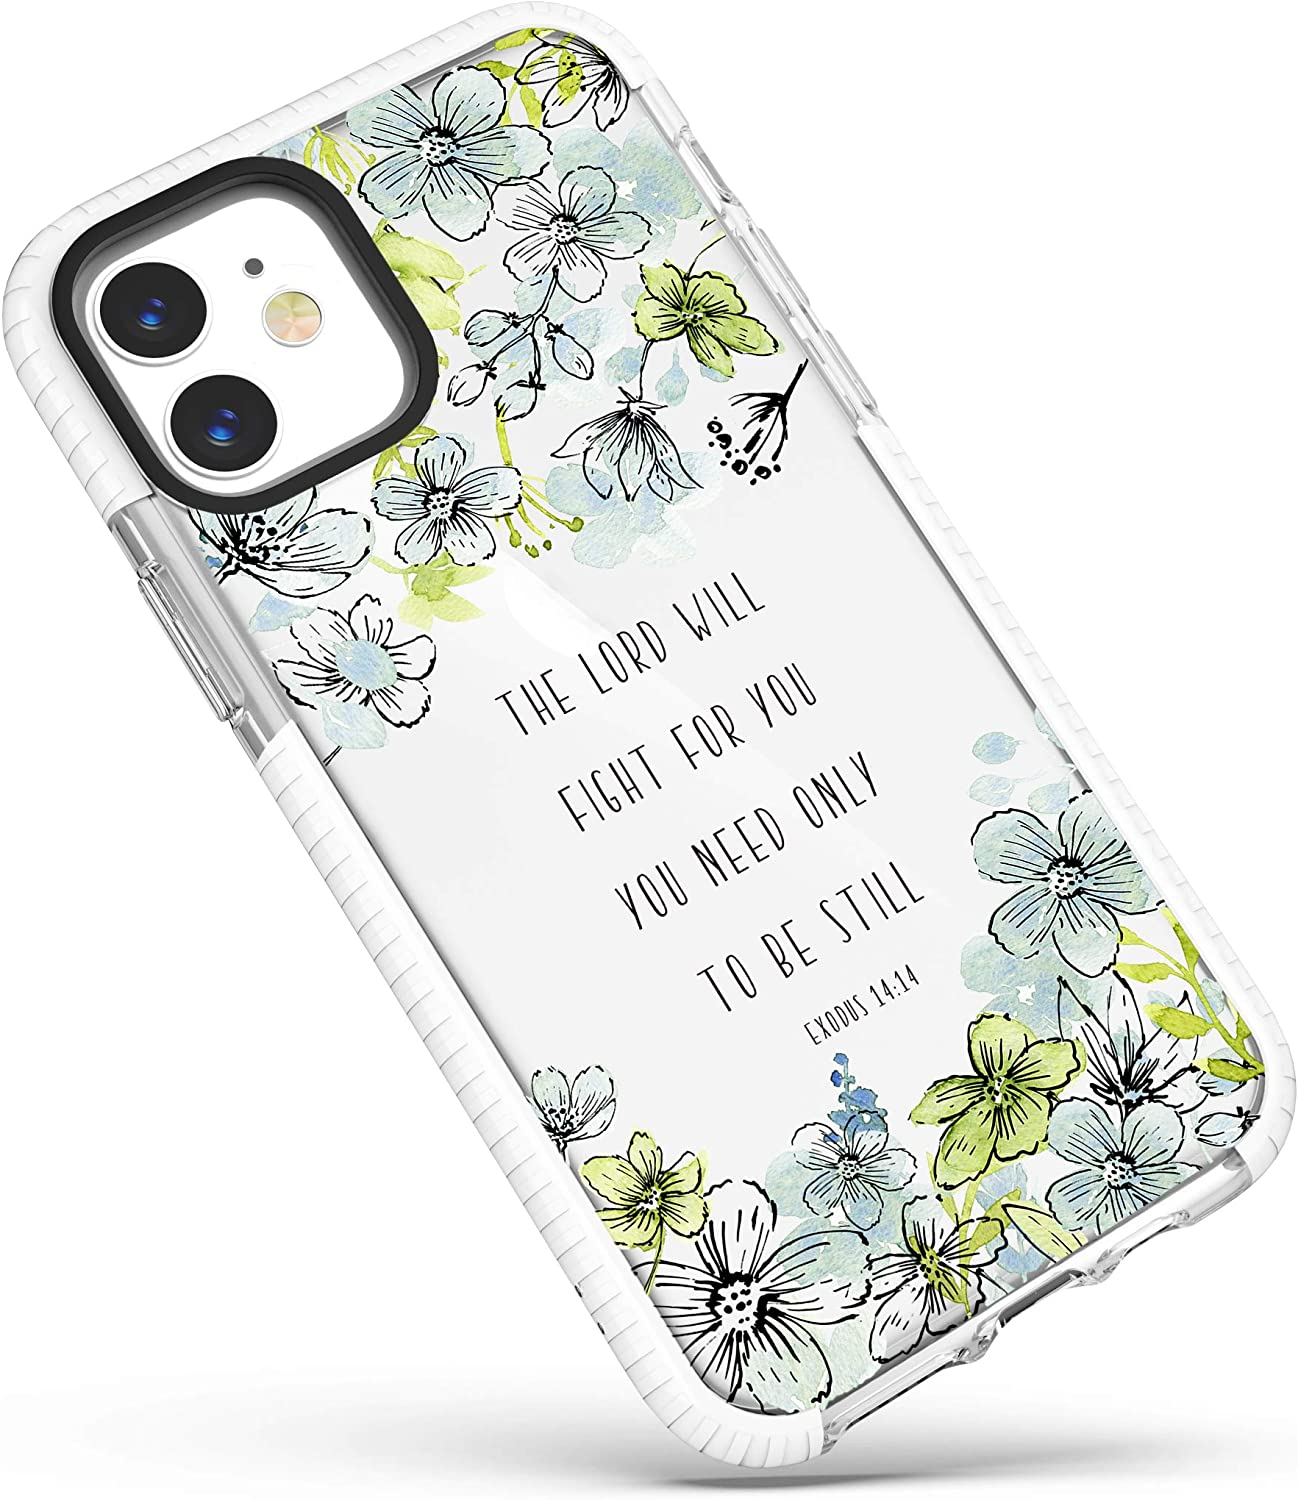 iPhone 12 Mini Case Clear,Blue Floral Flowers Inspirational Encouraging Bible Verses Christian Quotes Exodus 14:14 Soft Protective Clear Case with Design for Girls Women Compatible for iPhone 12 Mini